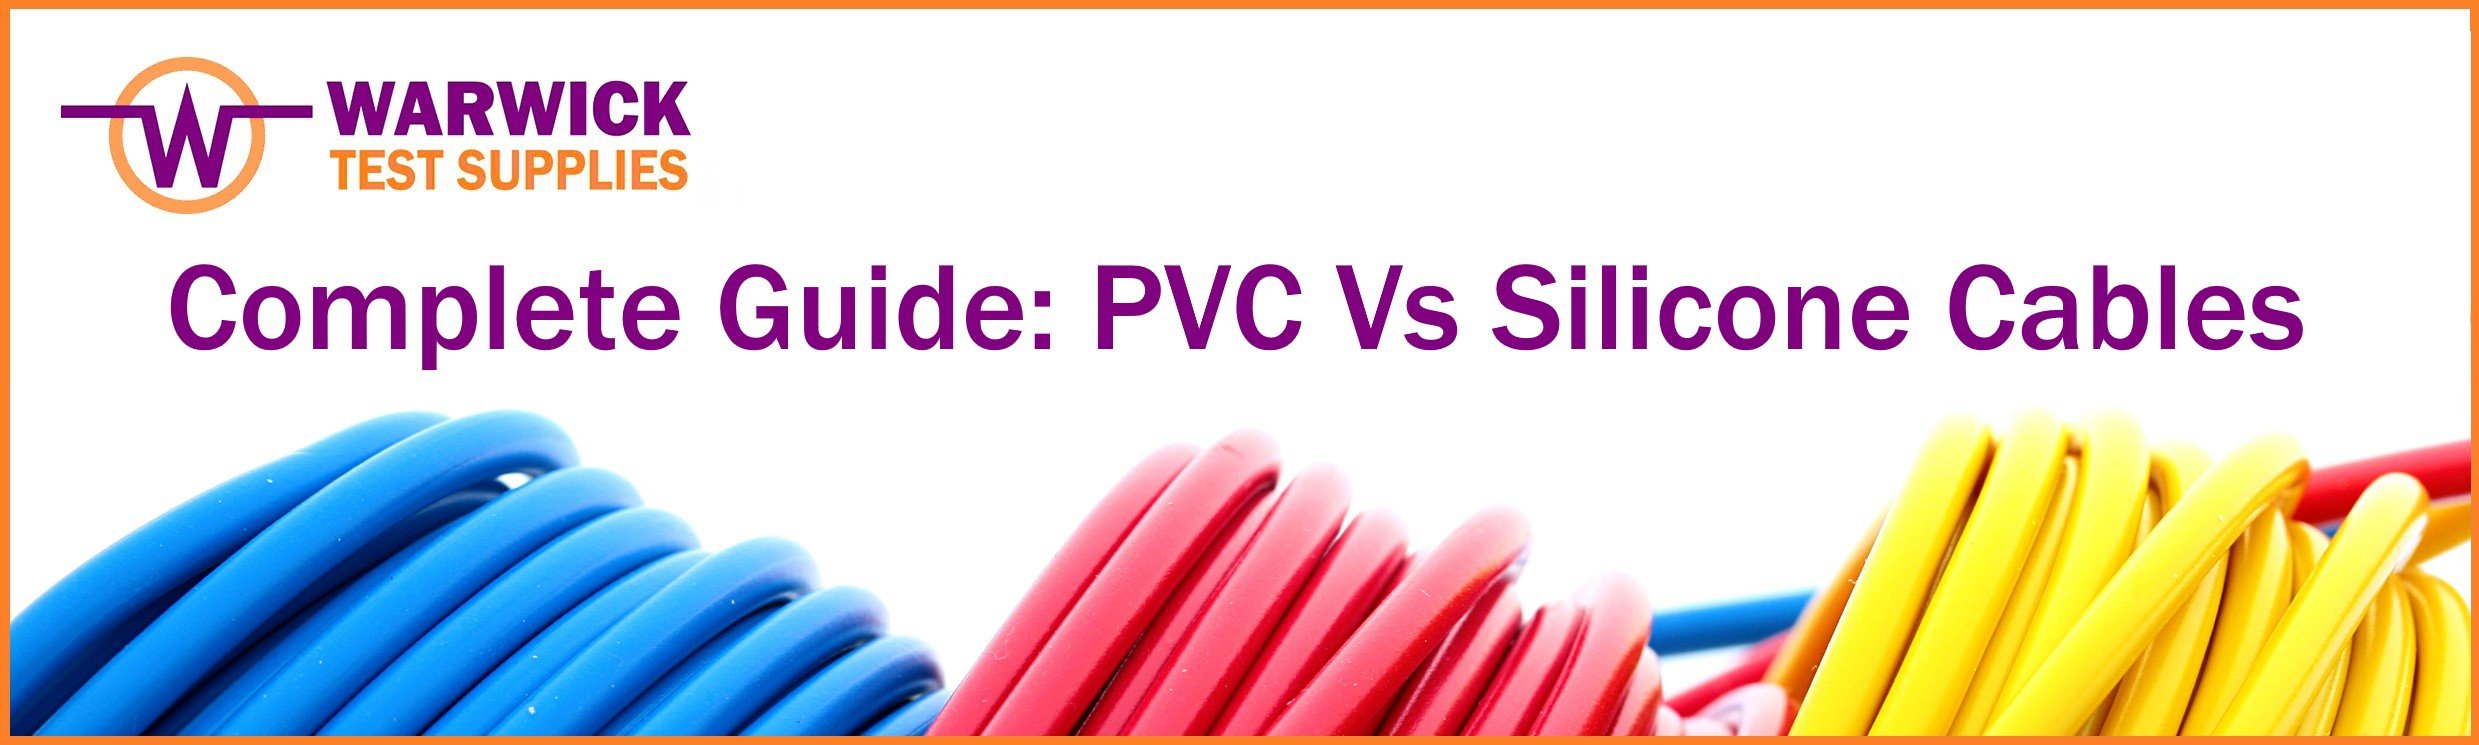 PVC and Silicone Cable